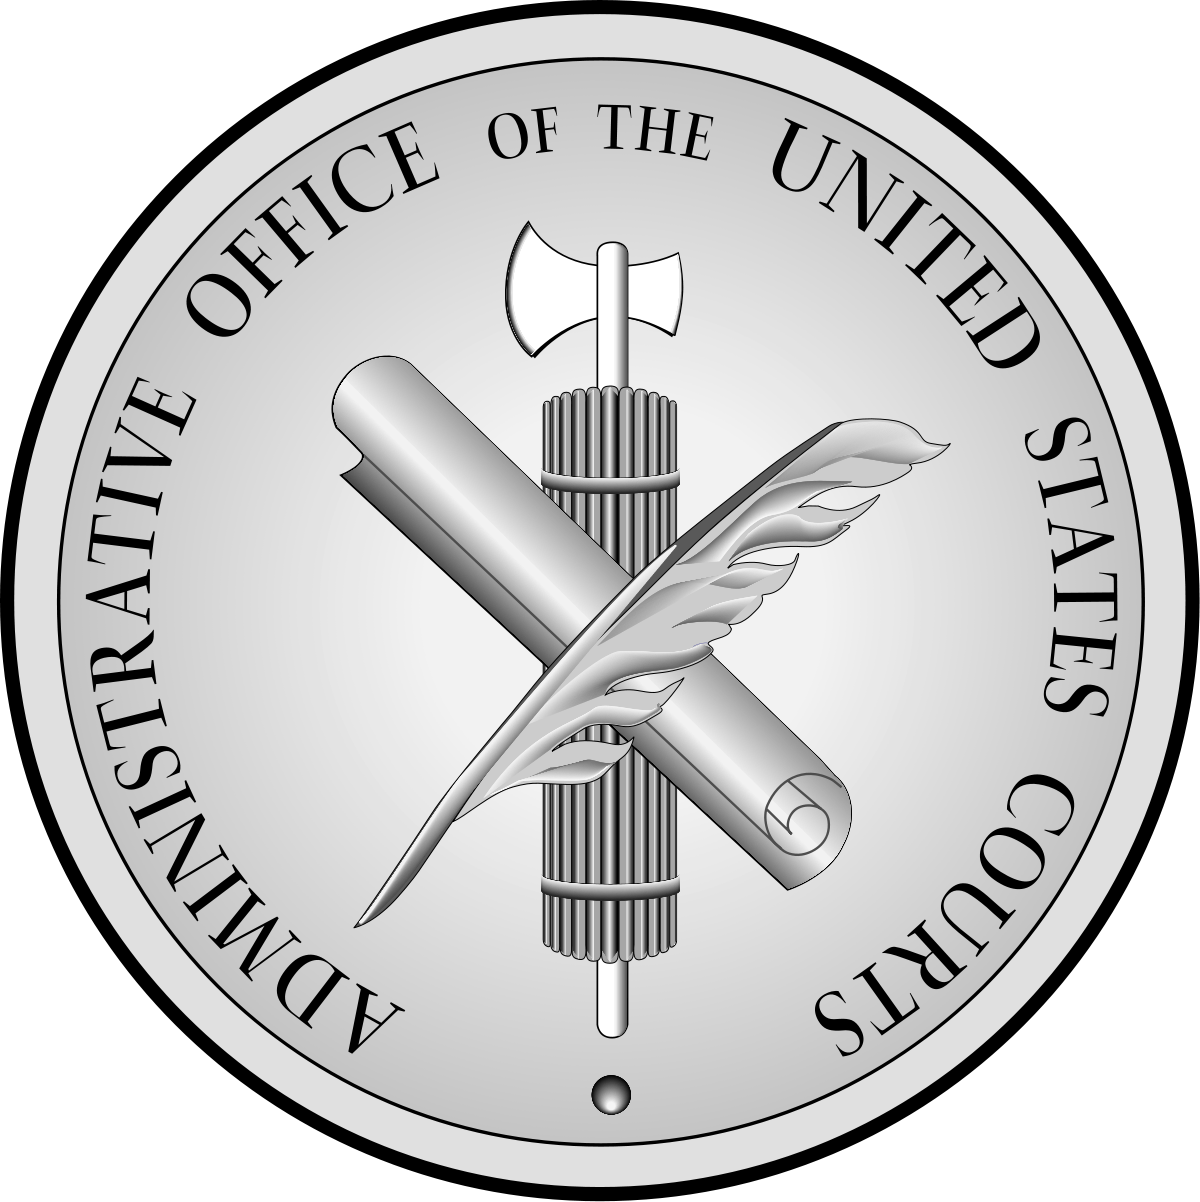 Court drawing federal. Administrative office of the